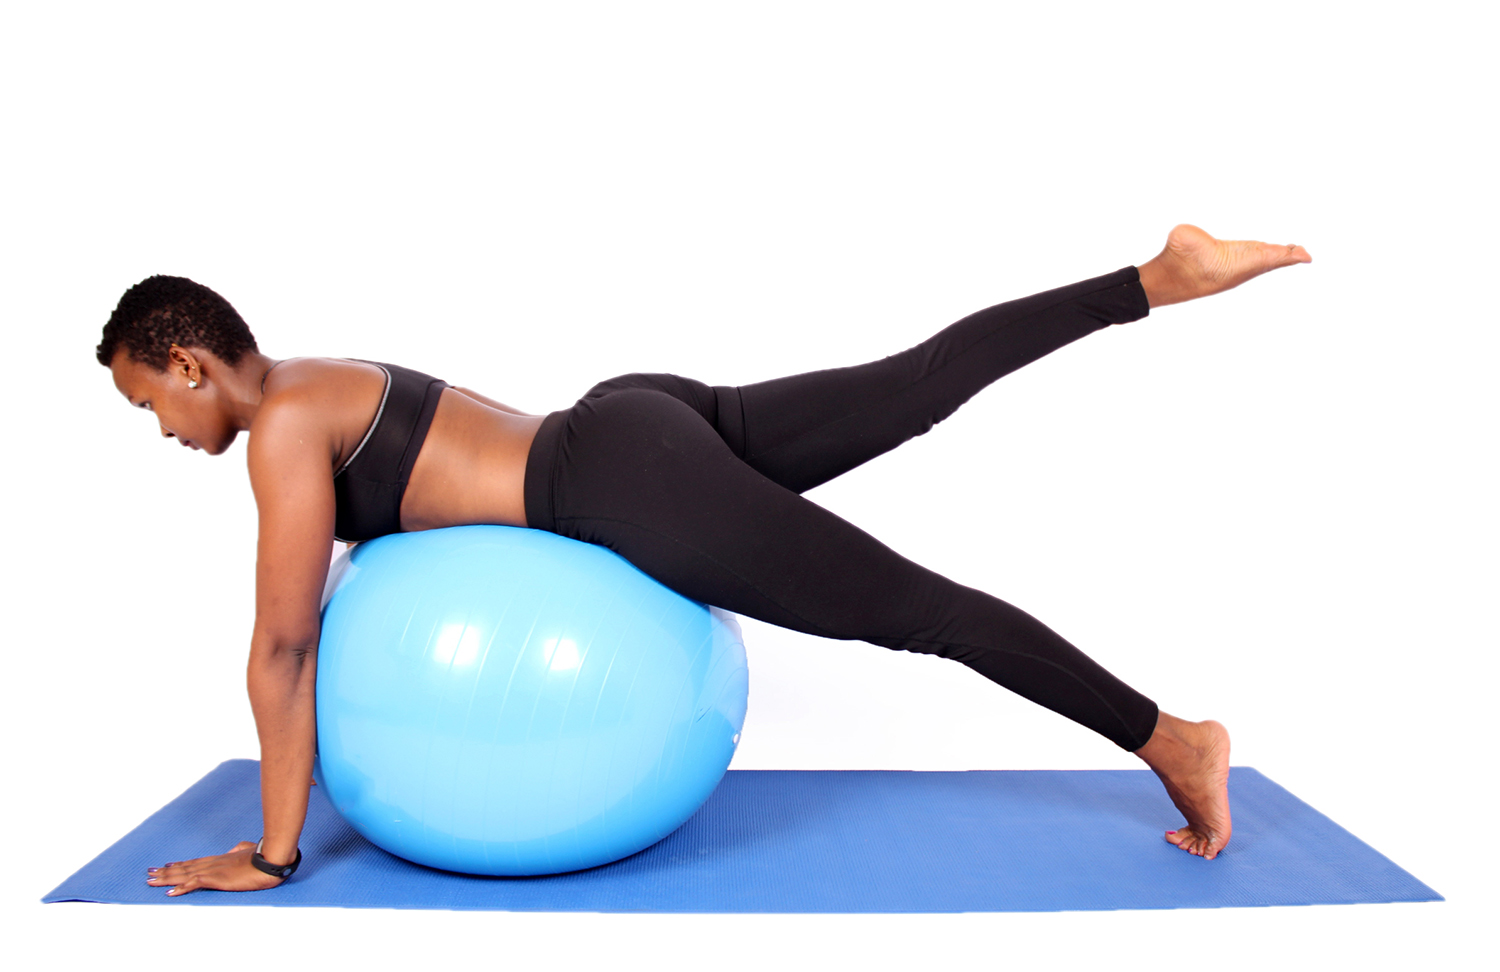 Athletic Woman Doing Butt and Lower Back Exercise Lying on Swiss Ball